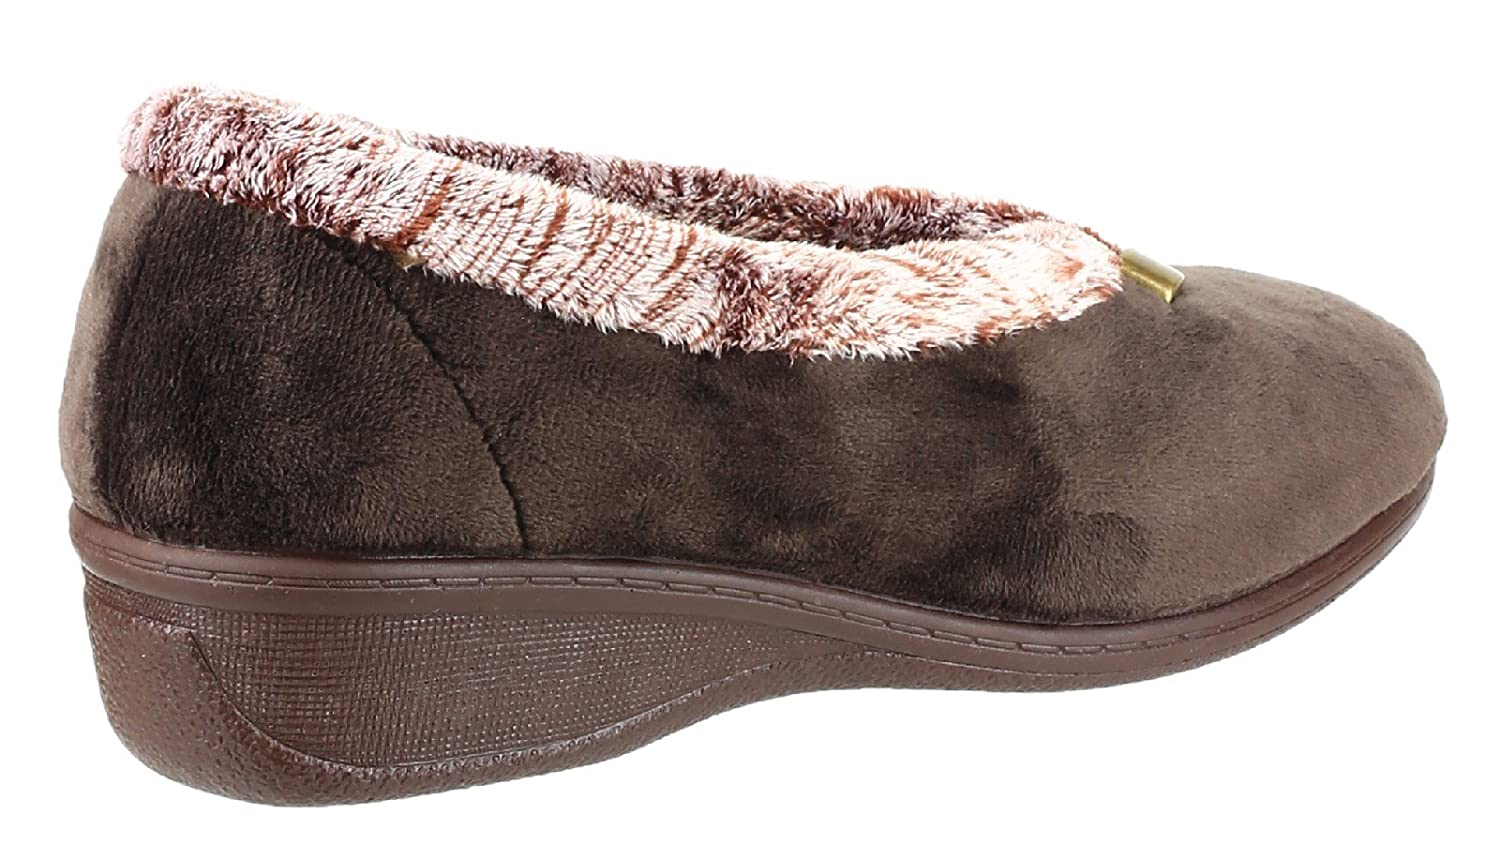 amp; co Broadway Amazon Slipper uk Womens Bags Shoes Cotswold vTwqx7Fq